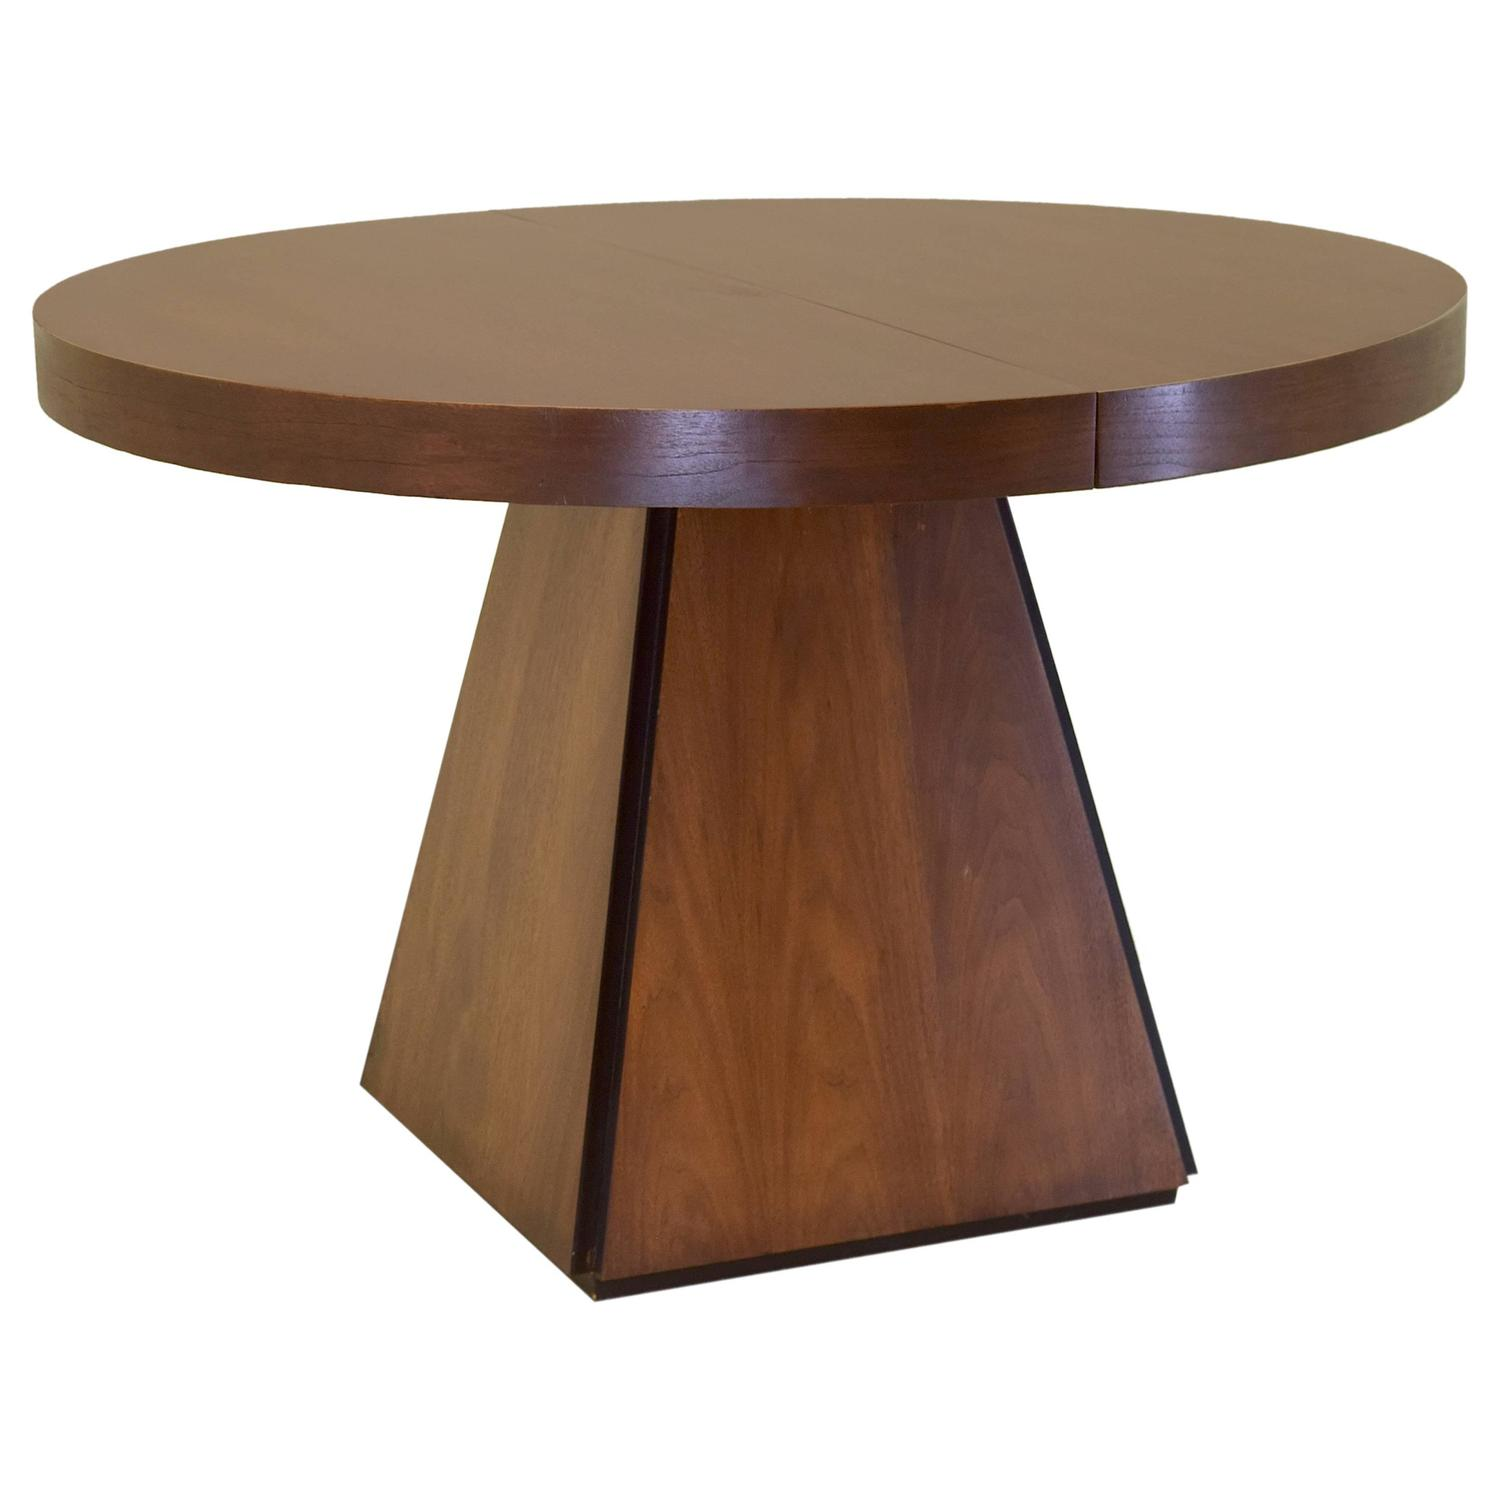 Pierre Cardin Round Obelisk Dining Table In Walnut With Extension Leaf At 1stdibs